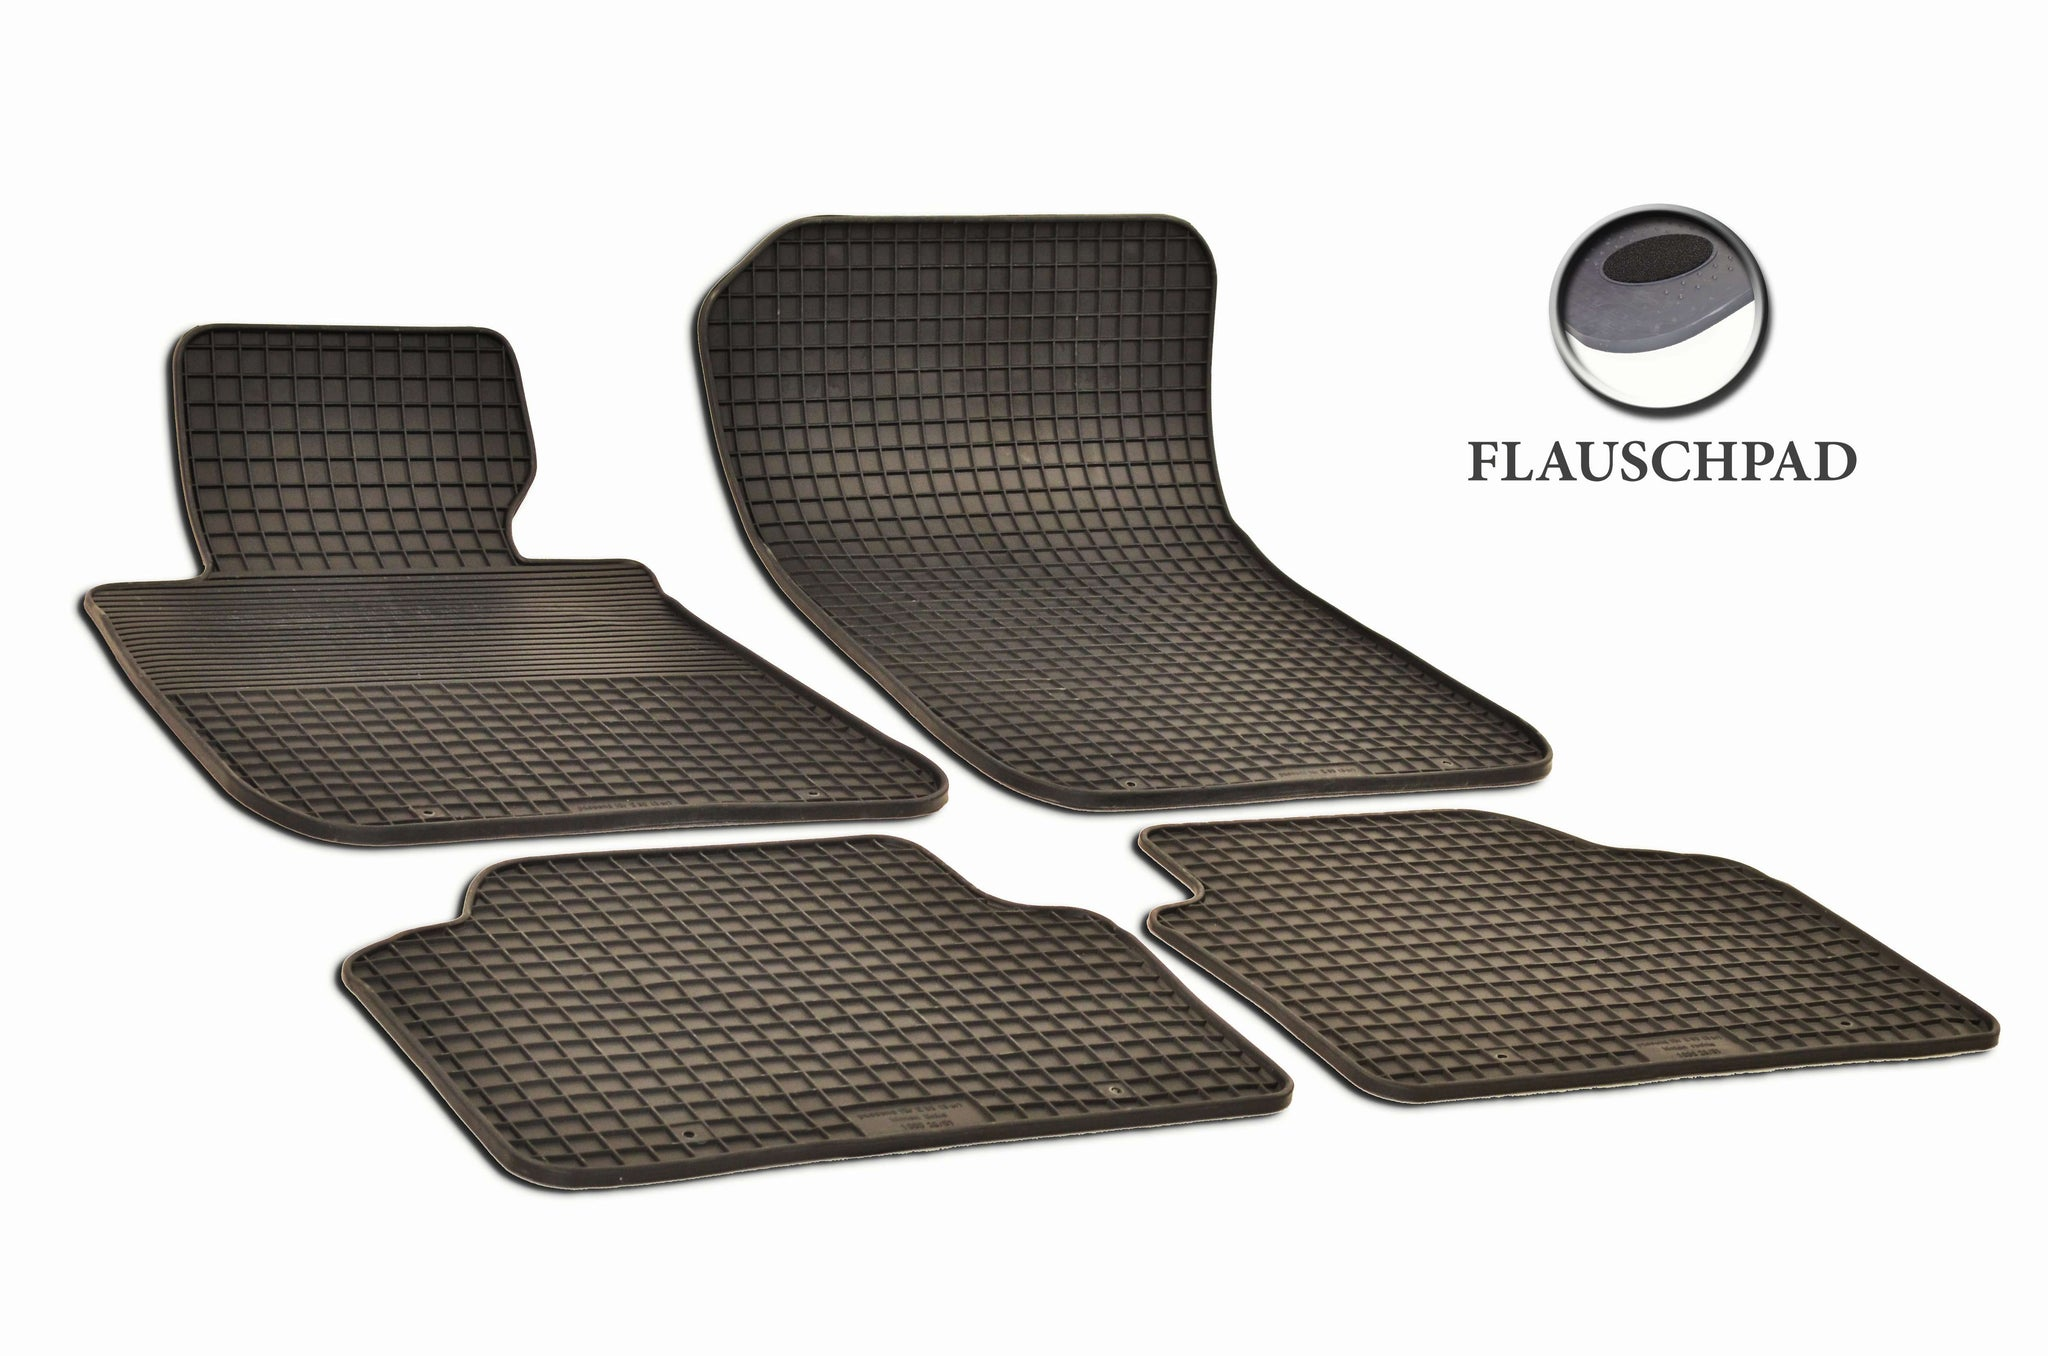 BMW 335i 2011 Sedan E90 Set of 4 Black Rubber OE Fit All Weather Car Floor Mats